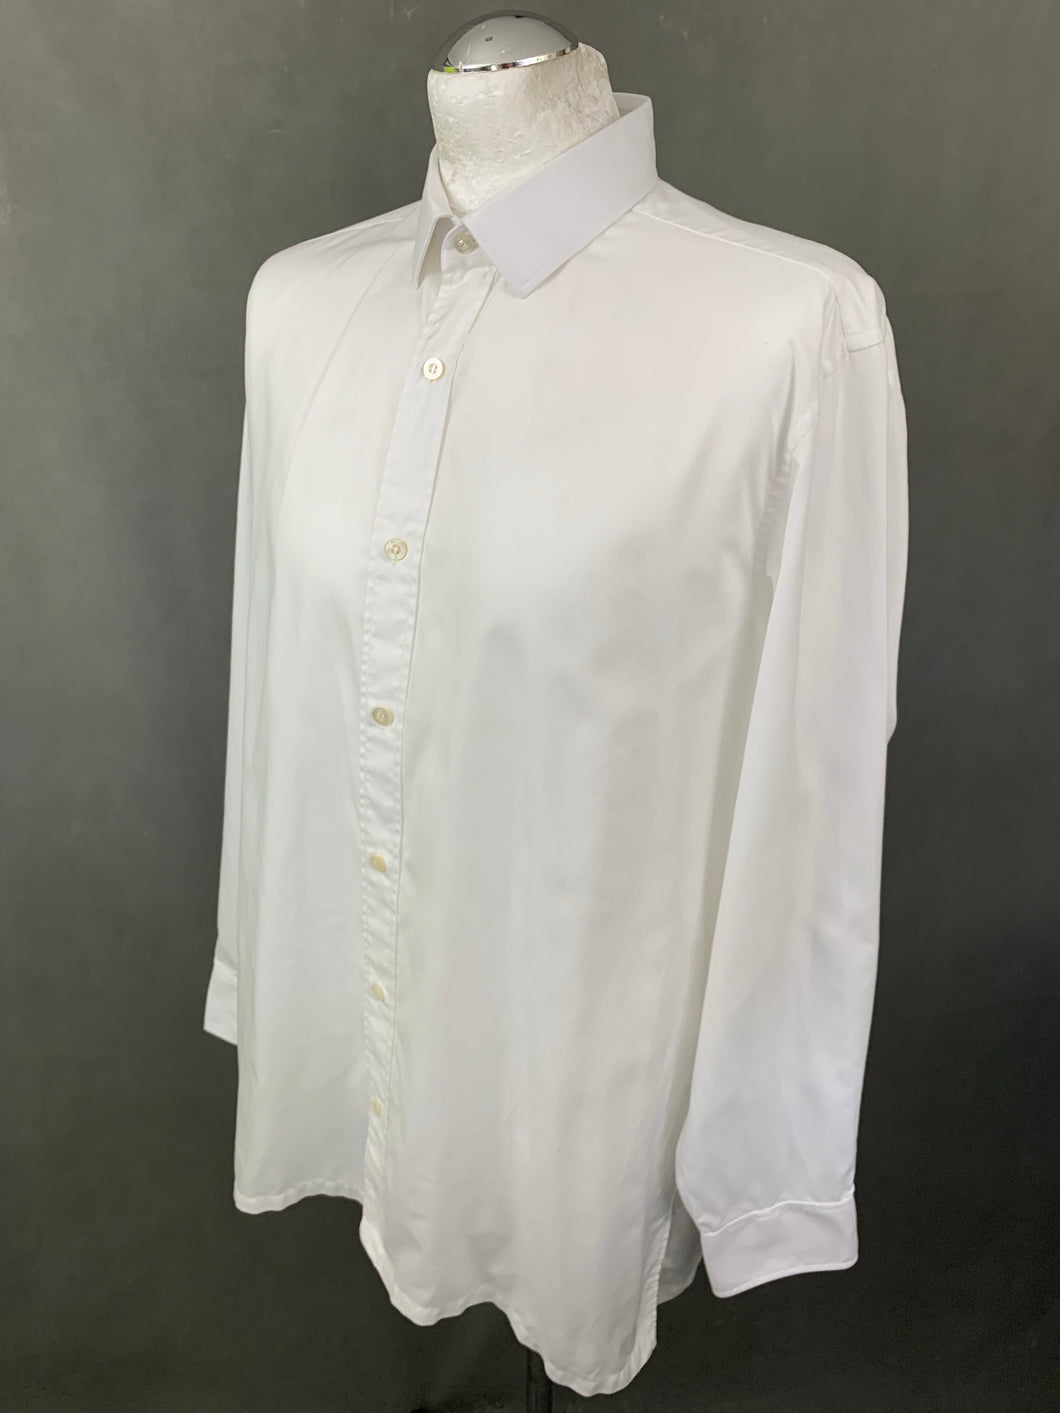 CHARVET Paris Mens White Long Sleeved SHIRT - Size 42